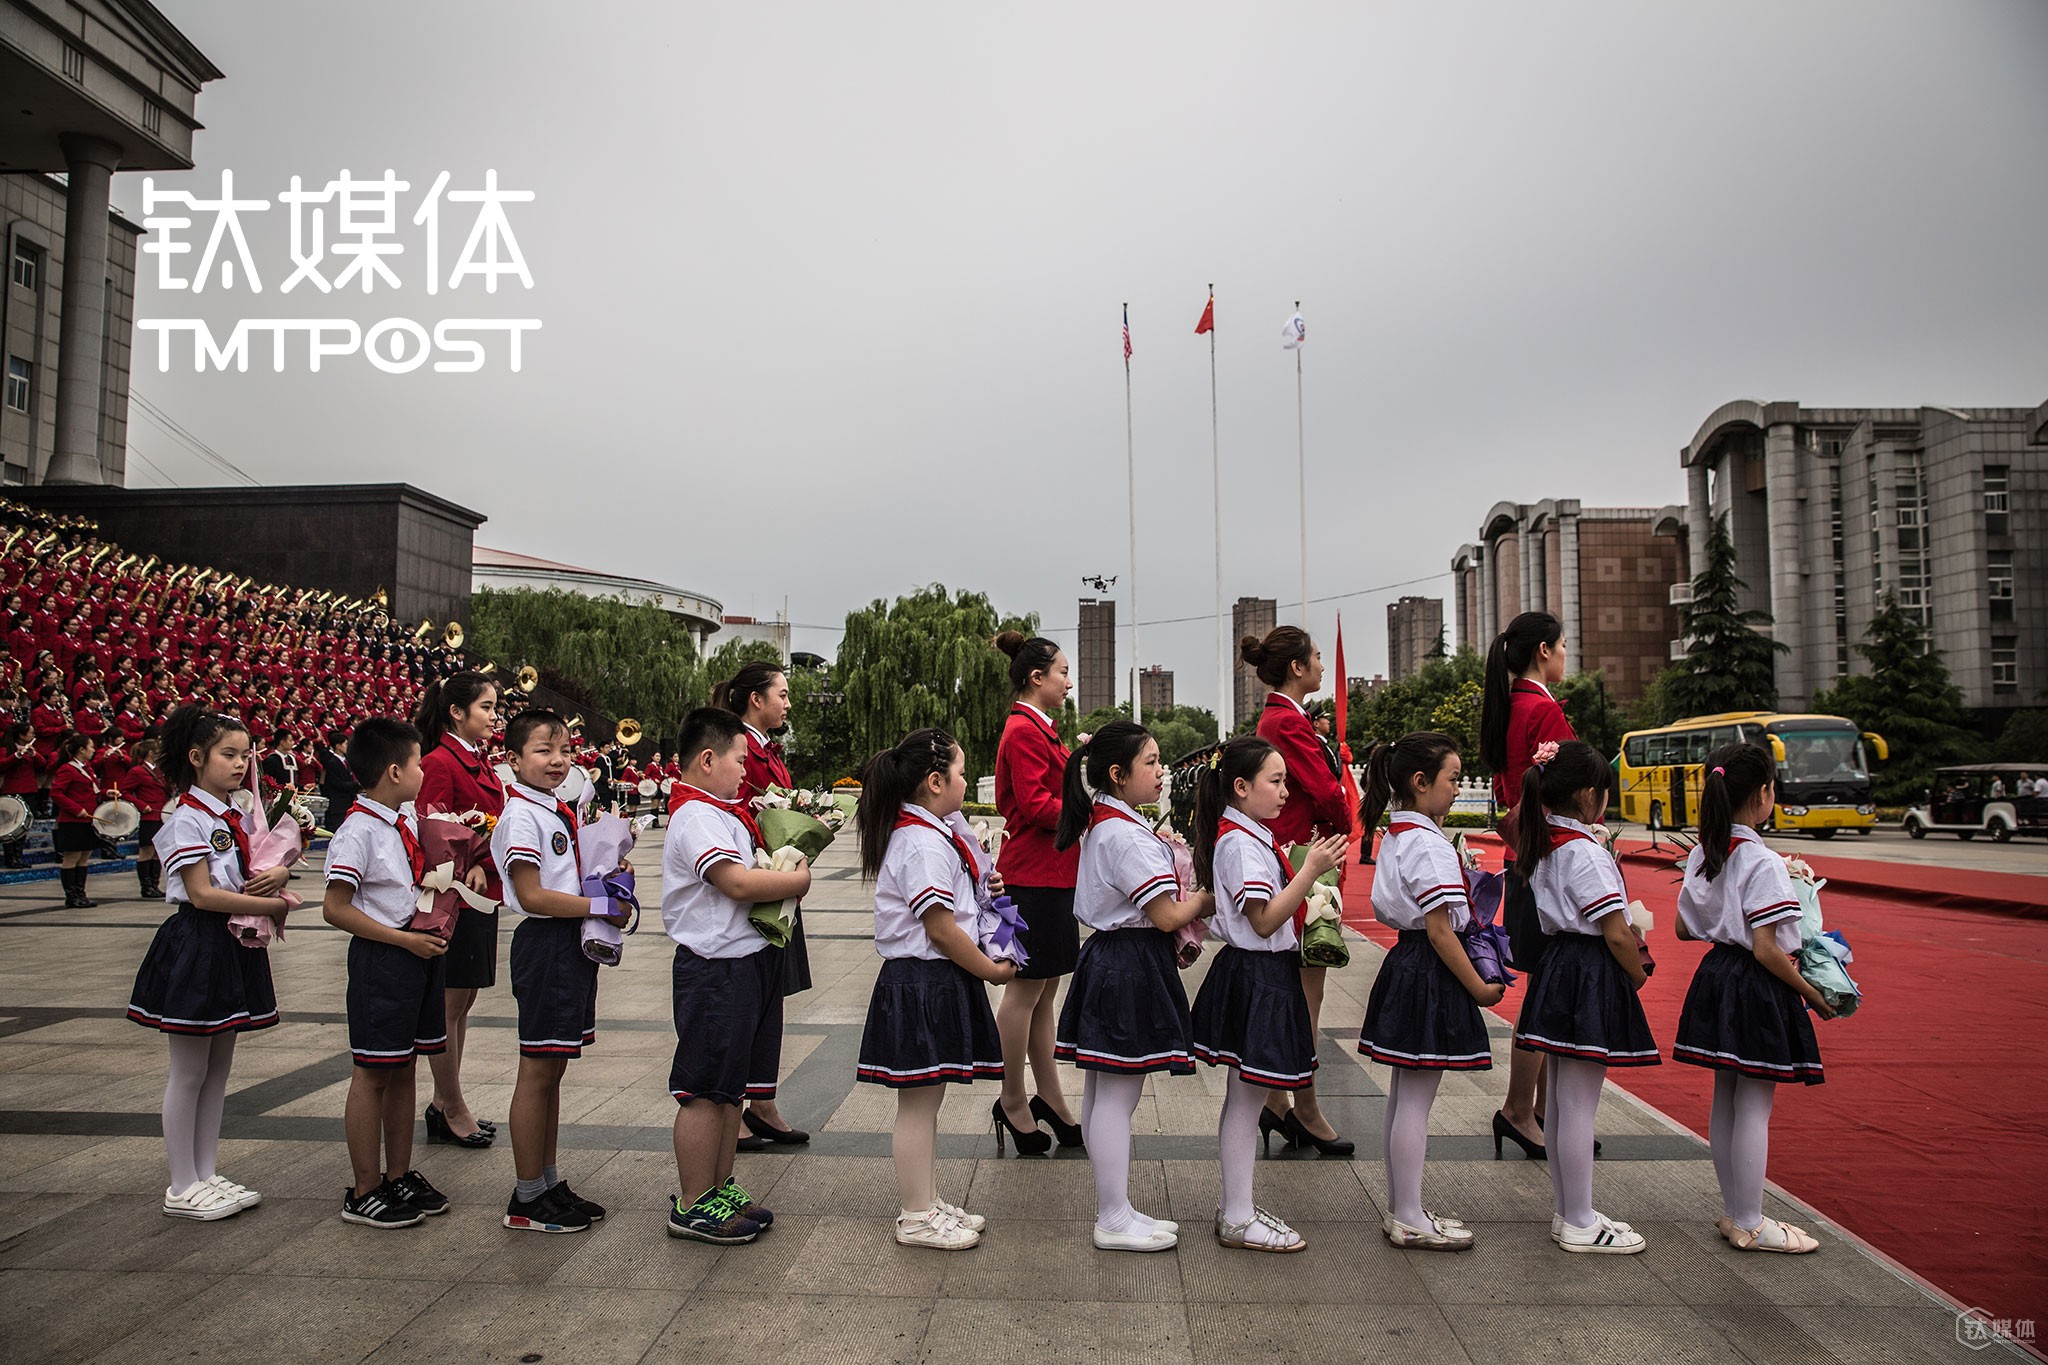 The welcome ceremony at Sias International University of Zhengzhou University